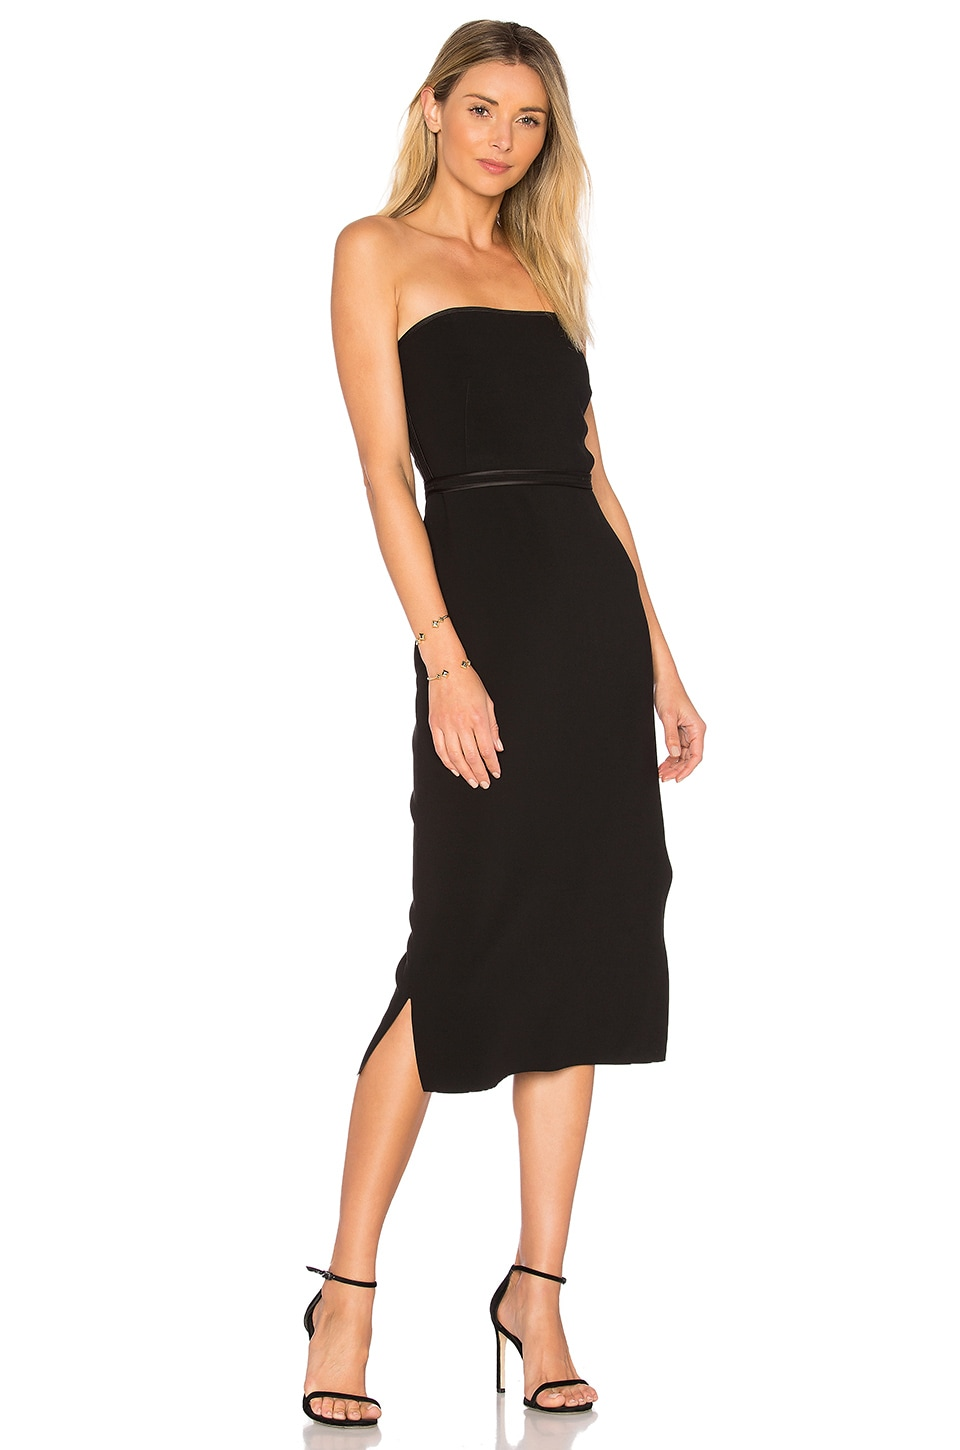 Elizabeth and James Sierra Strapless Dress in Black